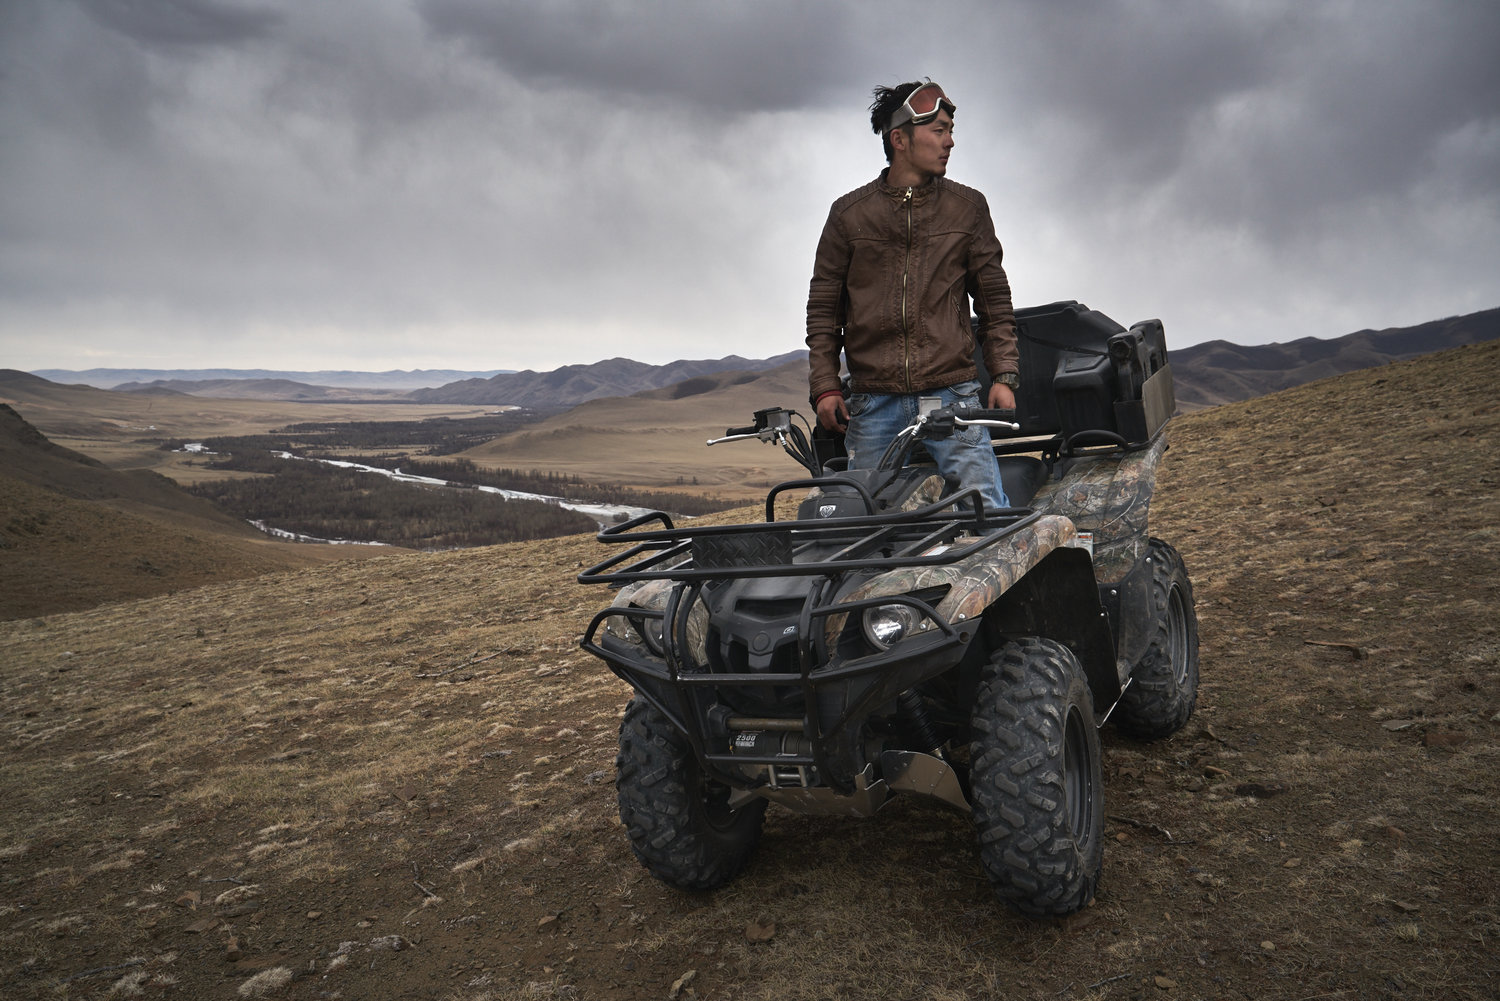 Motorbike|ATV|UTV|rental - Roam deserts and the steppes on a motorbike and go to place no one else has been before. We organize guided tailor made trips to Gobi desert Khuvsgul lake and also to off the beaten motorbike trails.